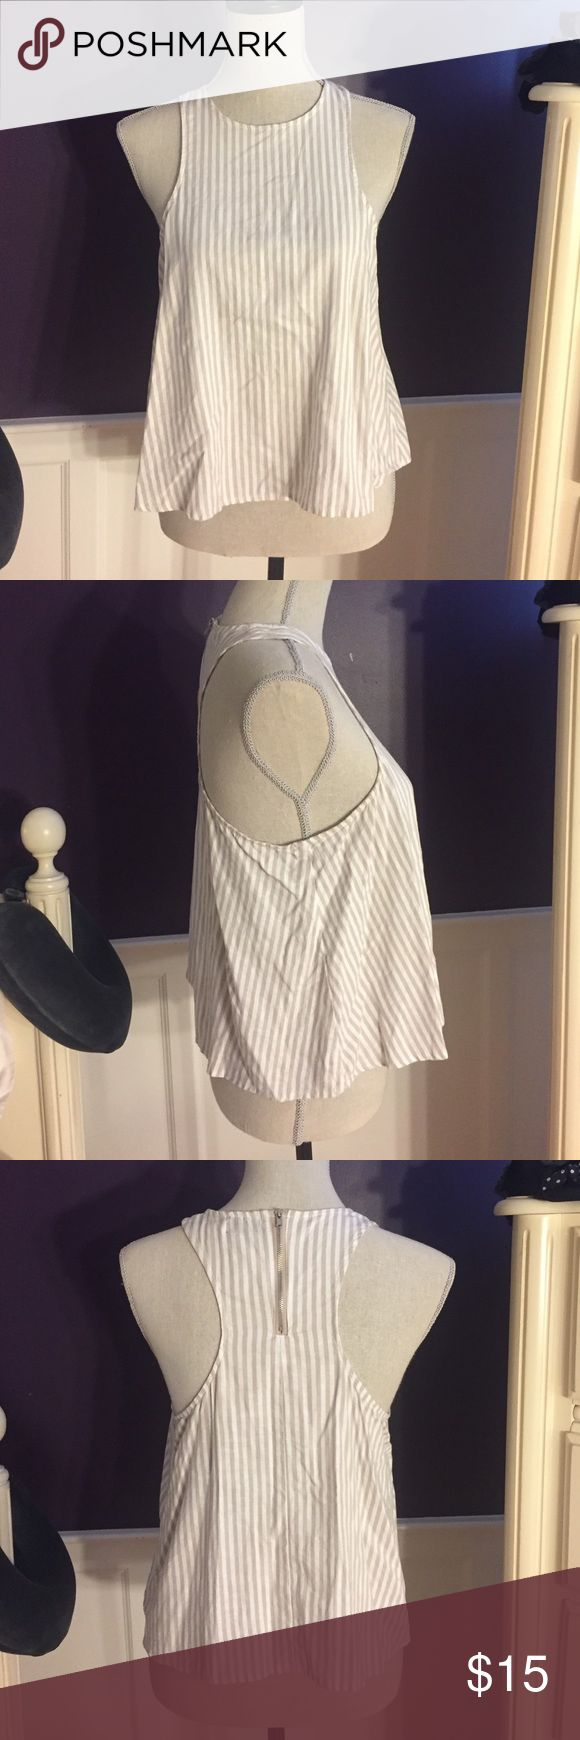 Urban Outfitters BDG Striped tank Urban Outfitters BDG Striped tank. Size: medium. White and tan stripes. Like new. Urban Outfitters Tops Tank Tops